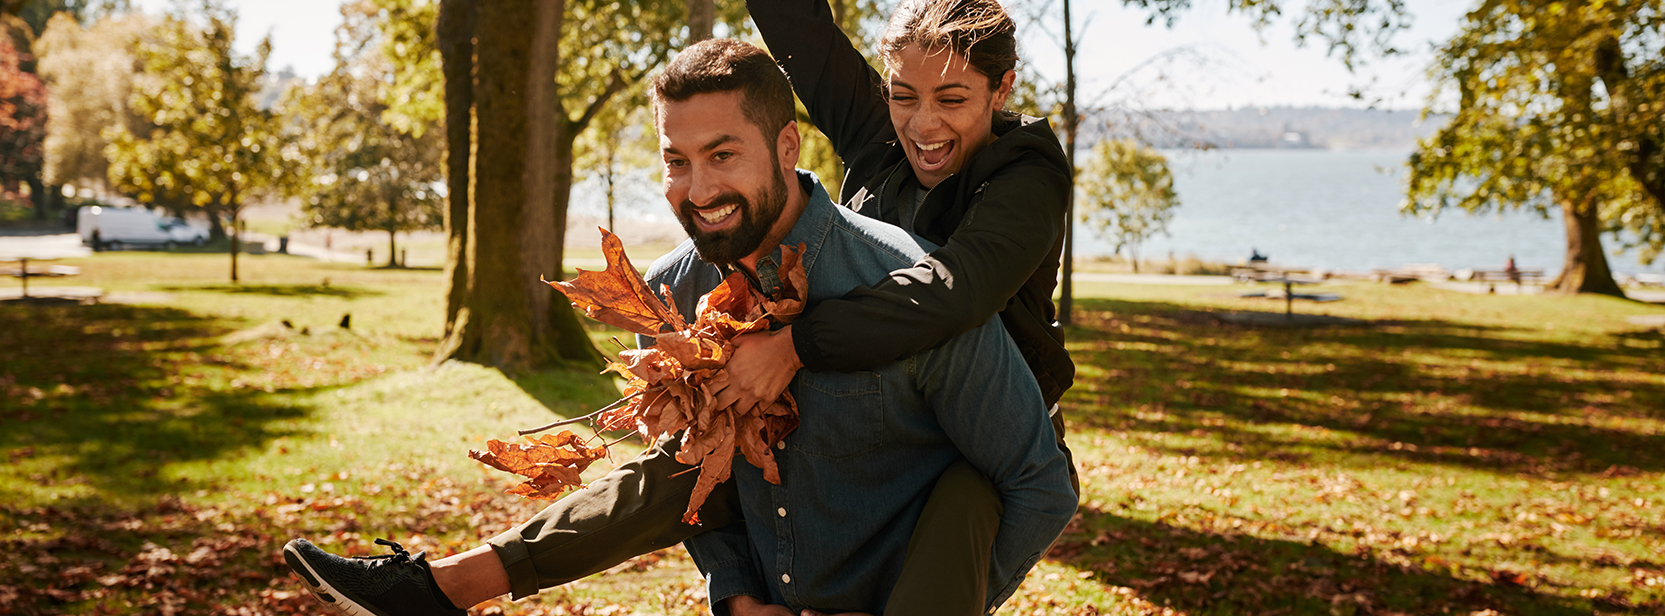 Couple playing with leaves in Vancouver park